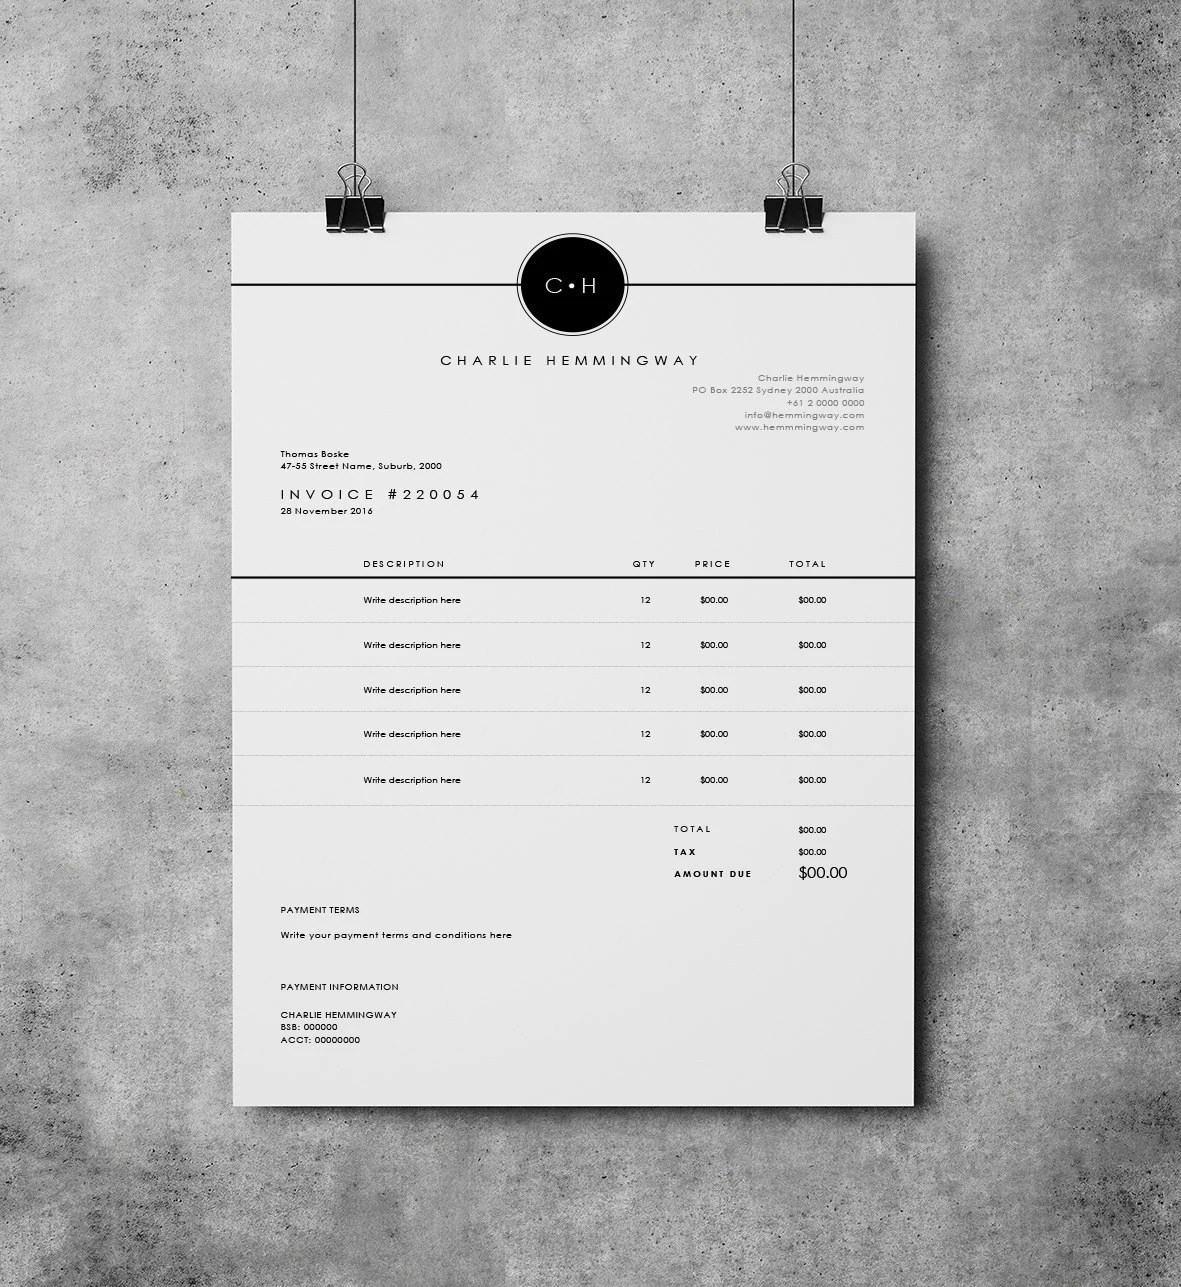 Invoice Template Invoice Design Receipt MS Word Invoice   Etsy